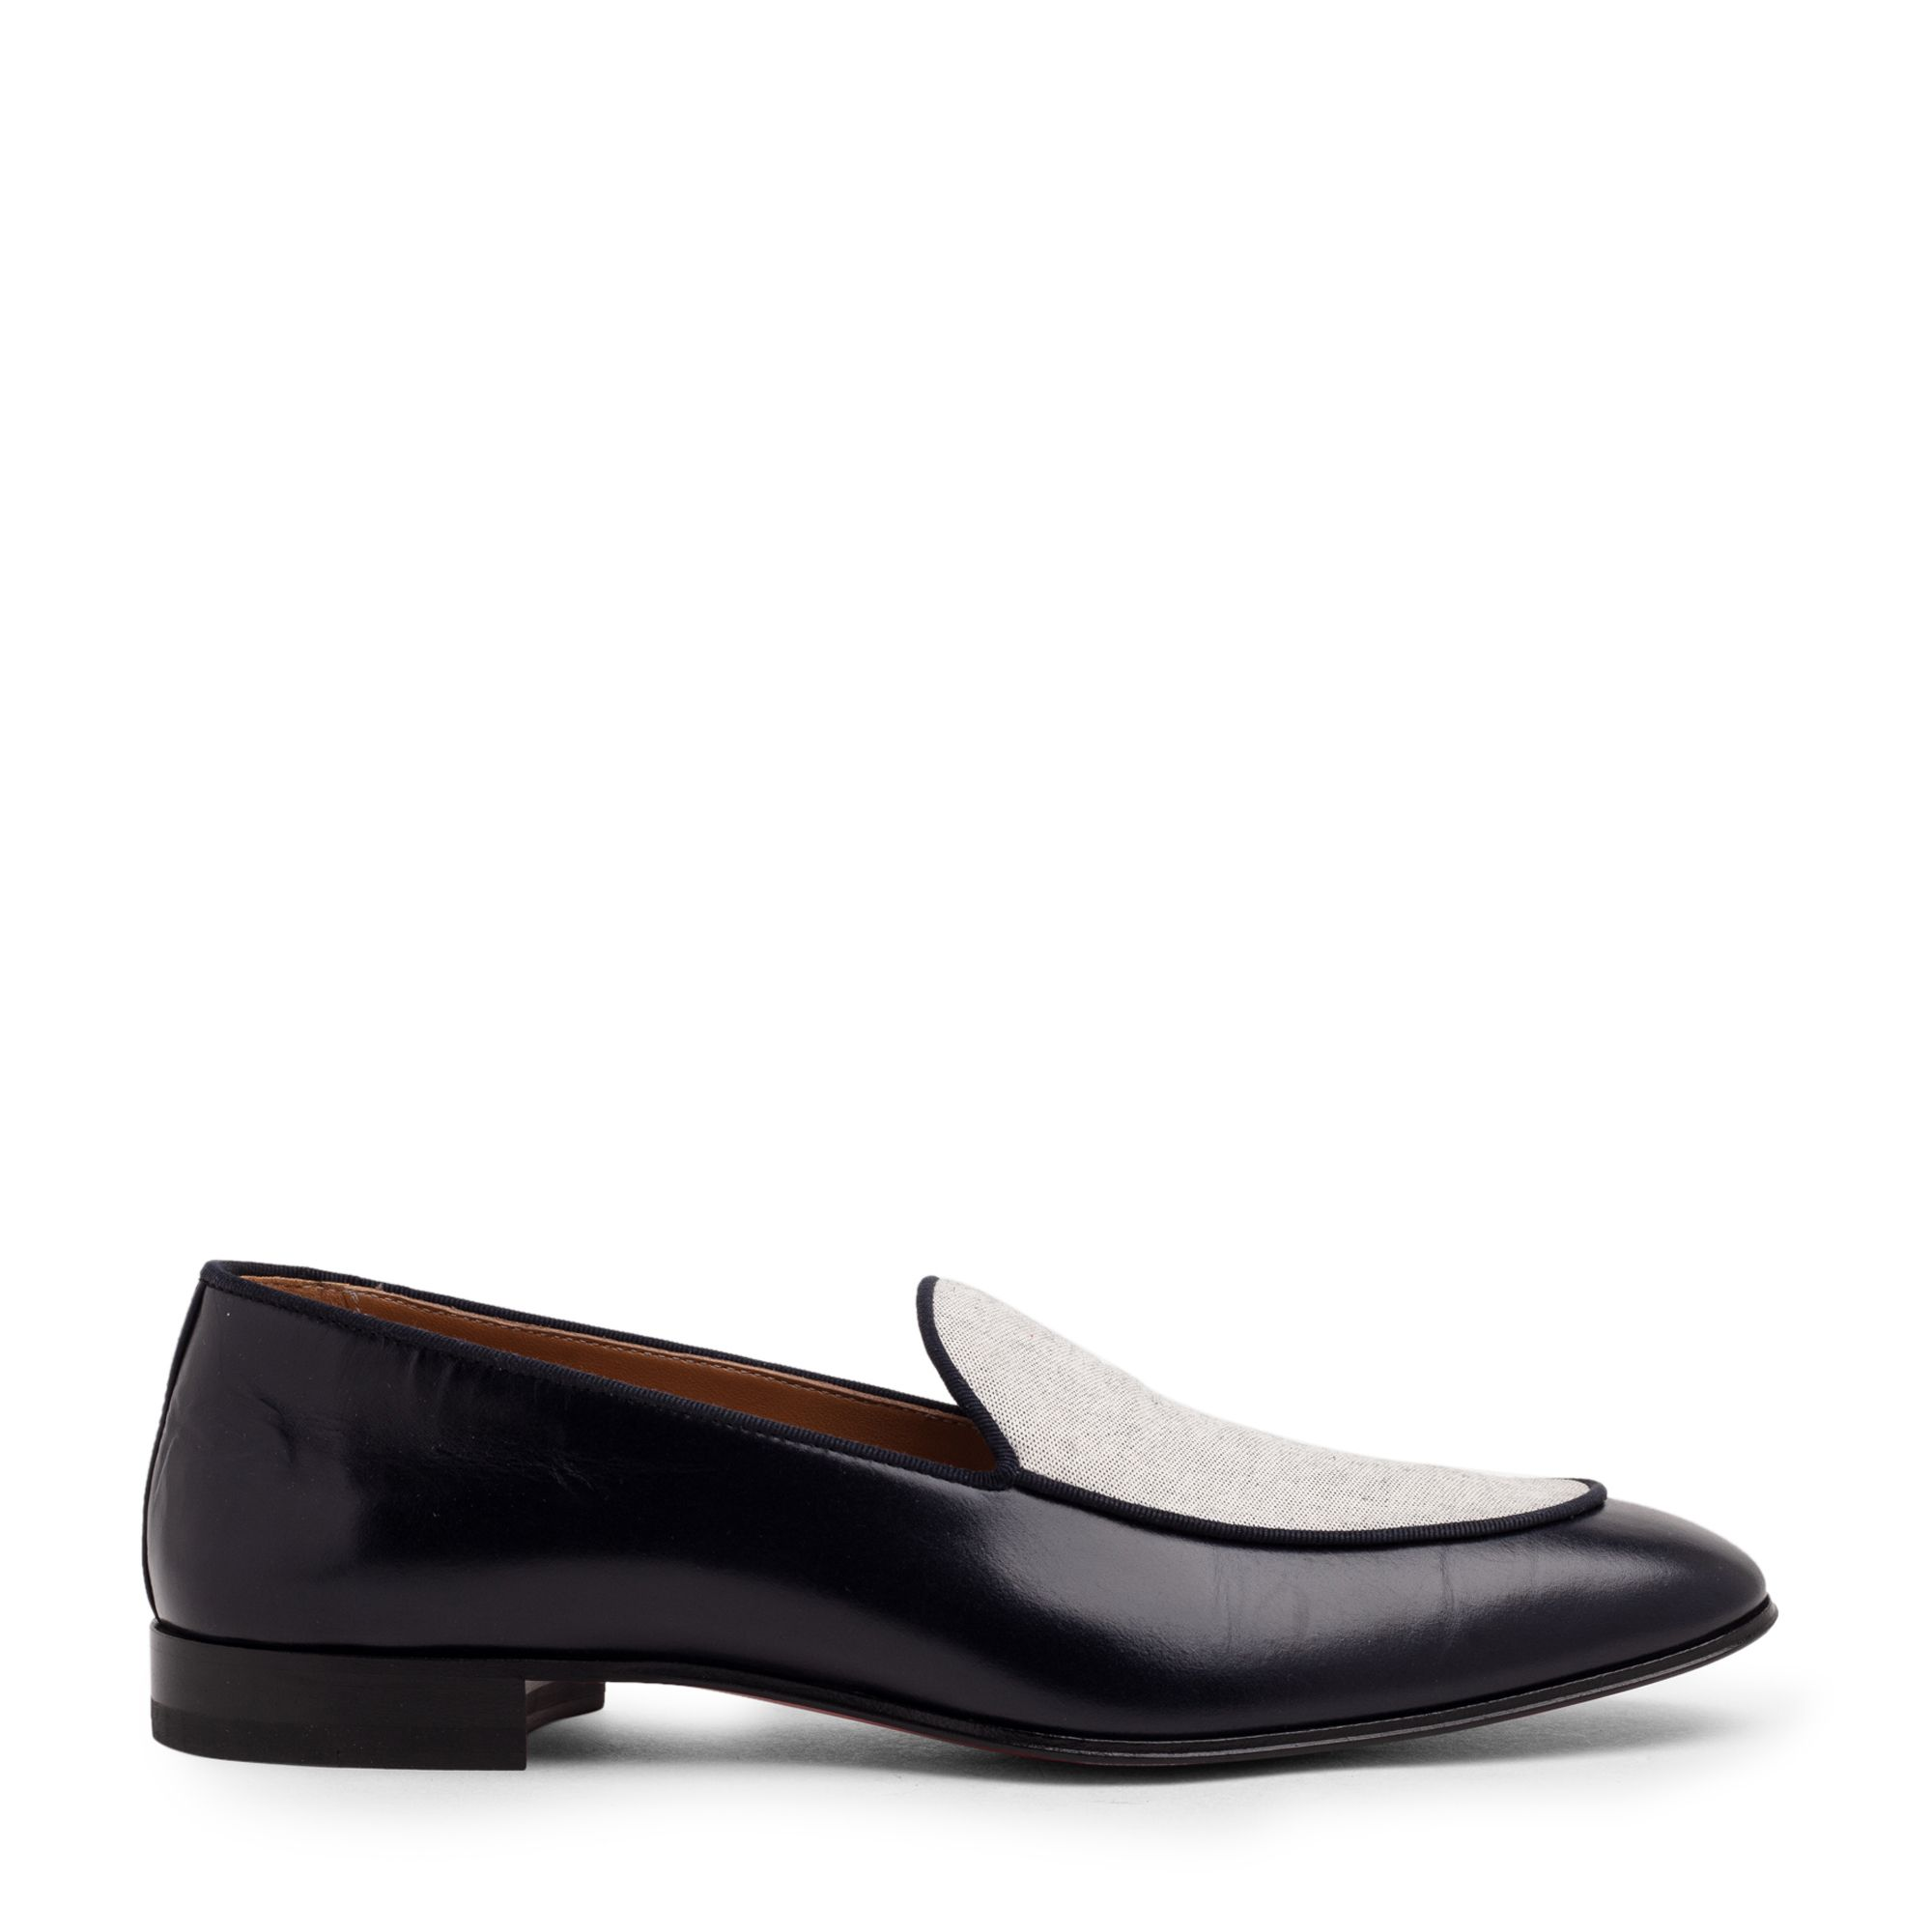 Style on the Nile moccasin loafers